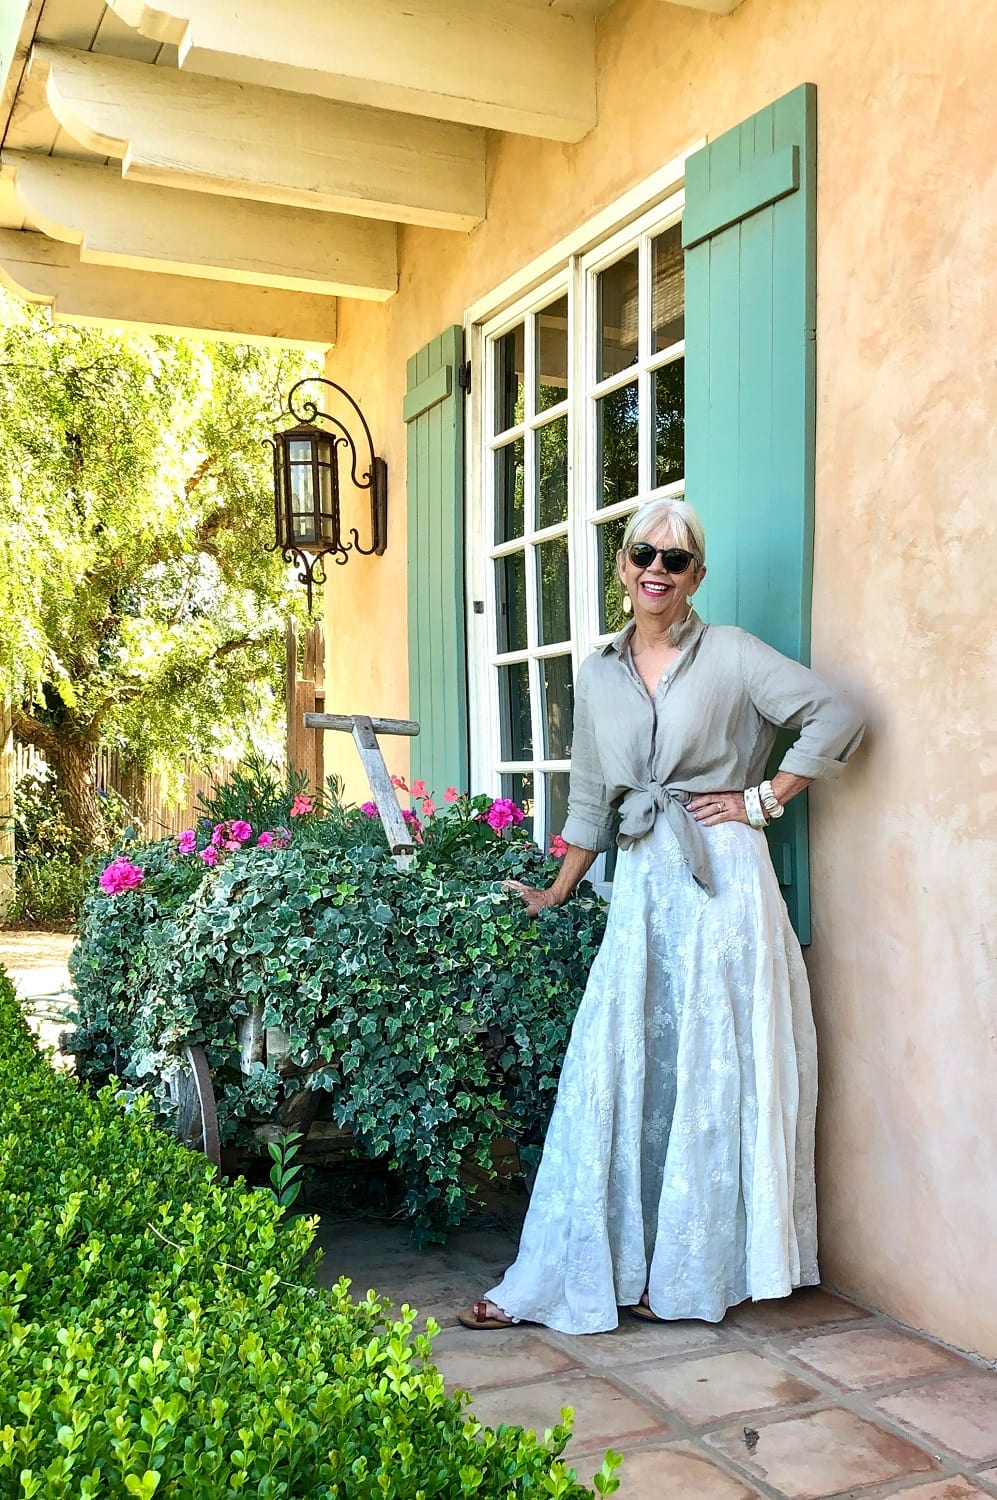 over 50 fashion blogger cindy hattersley in cp shades skirt and j jill line shirt